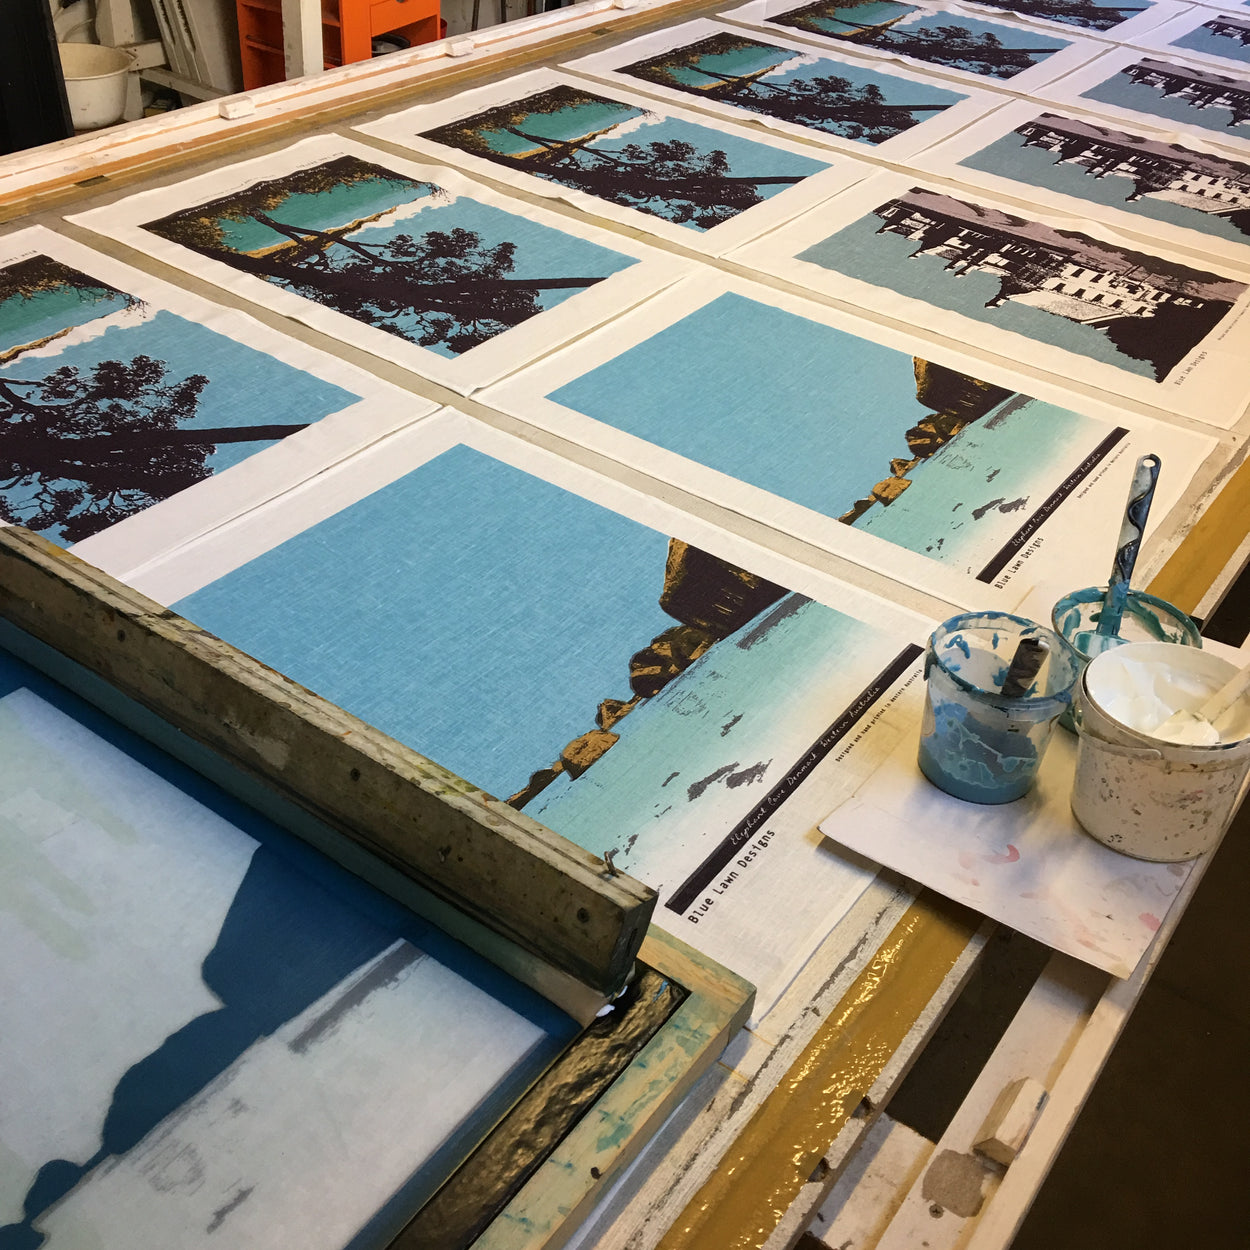 Photograph of tea towels being printed.